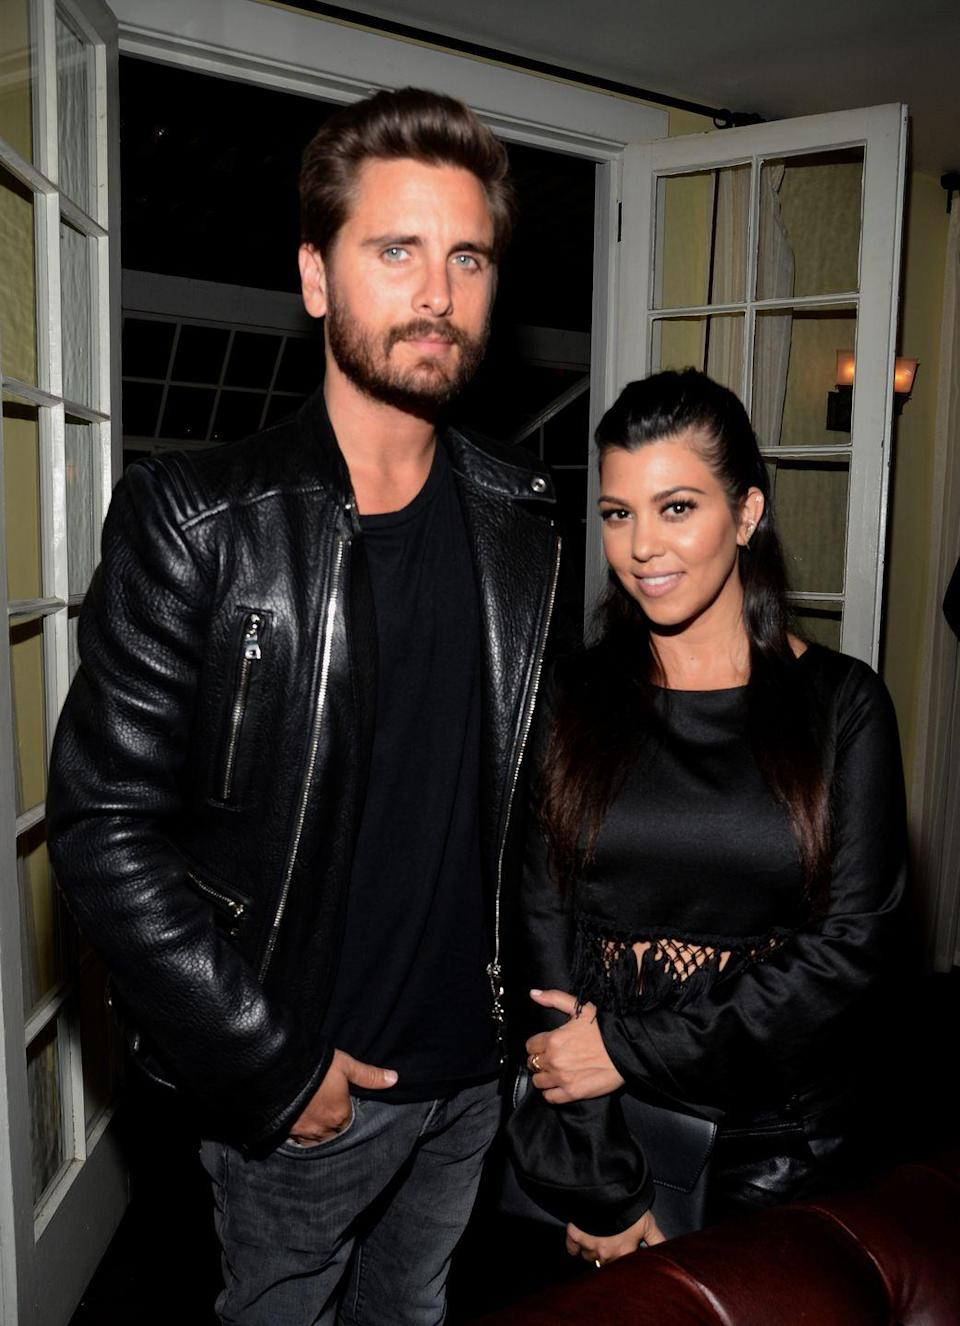 """<p>Though they've never gotten married, Kourtney Kardashian and Scott Disick were partners for the better part of six years. When cheating rumors surfaced in <a href=""""https://www.eonline.com/news/673020/scott-disick-partying-hard-and-off-the-wagon-in-south-of-france-without-kourtney-kardashian"""" rel=""""nofollow noopener"""" target=""""_blank"""" data-ylk=""""slk:July 2015"""" class=""""link rapid-noclick-resp"""">July 2015</a>, Kourtney <a href=""""https://www.eonline.com/news/673240/kourtney-kardashian-breaks-up-with-scott-disick-she-has-to-do-what-s-best-for-the-kids%EF%BB%BF%EF%BB%BF"""" rel=""""nofollow noopener"""" target=""""_blank"""" data-ylk=""""slk:didn't waste any time"""" class=""""link rapid-noclick-resp"""">didn't waste any time</a> and dumped the father of her three children. The couple <a href=""""https://www.eonline.com/news/813135/kourtney-kardashian-and-scott-disick-are-back-together-after-a-year-and-a-half-apart%EF%BB%BF%EF%BB%BF"""" rel=""""nofollow noopener"""" target=""""_blank"""" data-ylk=""""slk:reunited in late 2016"""" class=""""link rapid-noclick-resp"""">reunited in late 2016</a>, only to call it quits for a second time in <a href=""""https://www.cosmopolitan.com/uk/entertainment/news/a49327/scott-disick-cosies-up-women-miami-hours-kourtney-kardashian/"""" rel=""""nofollow noopener"""" target=""""_blank"""" data-ylk=""""slk:February 2017"""" class=""""link rapid-noclick-resp"""">February 2017</a>. </p>"""